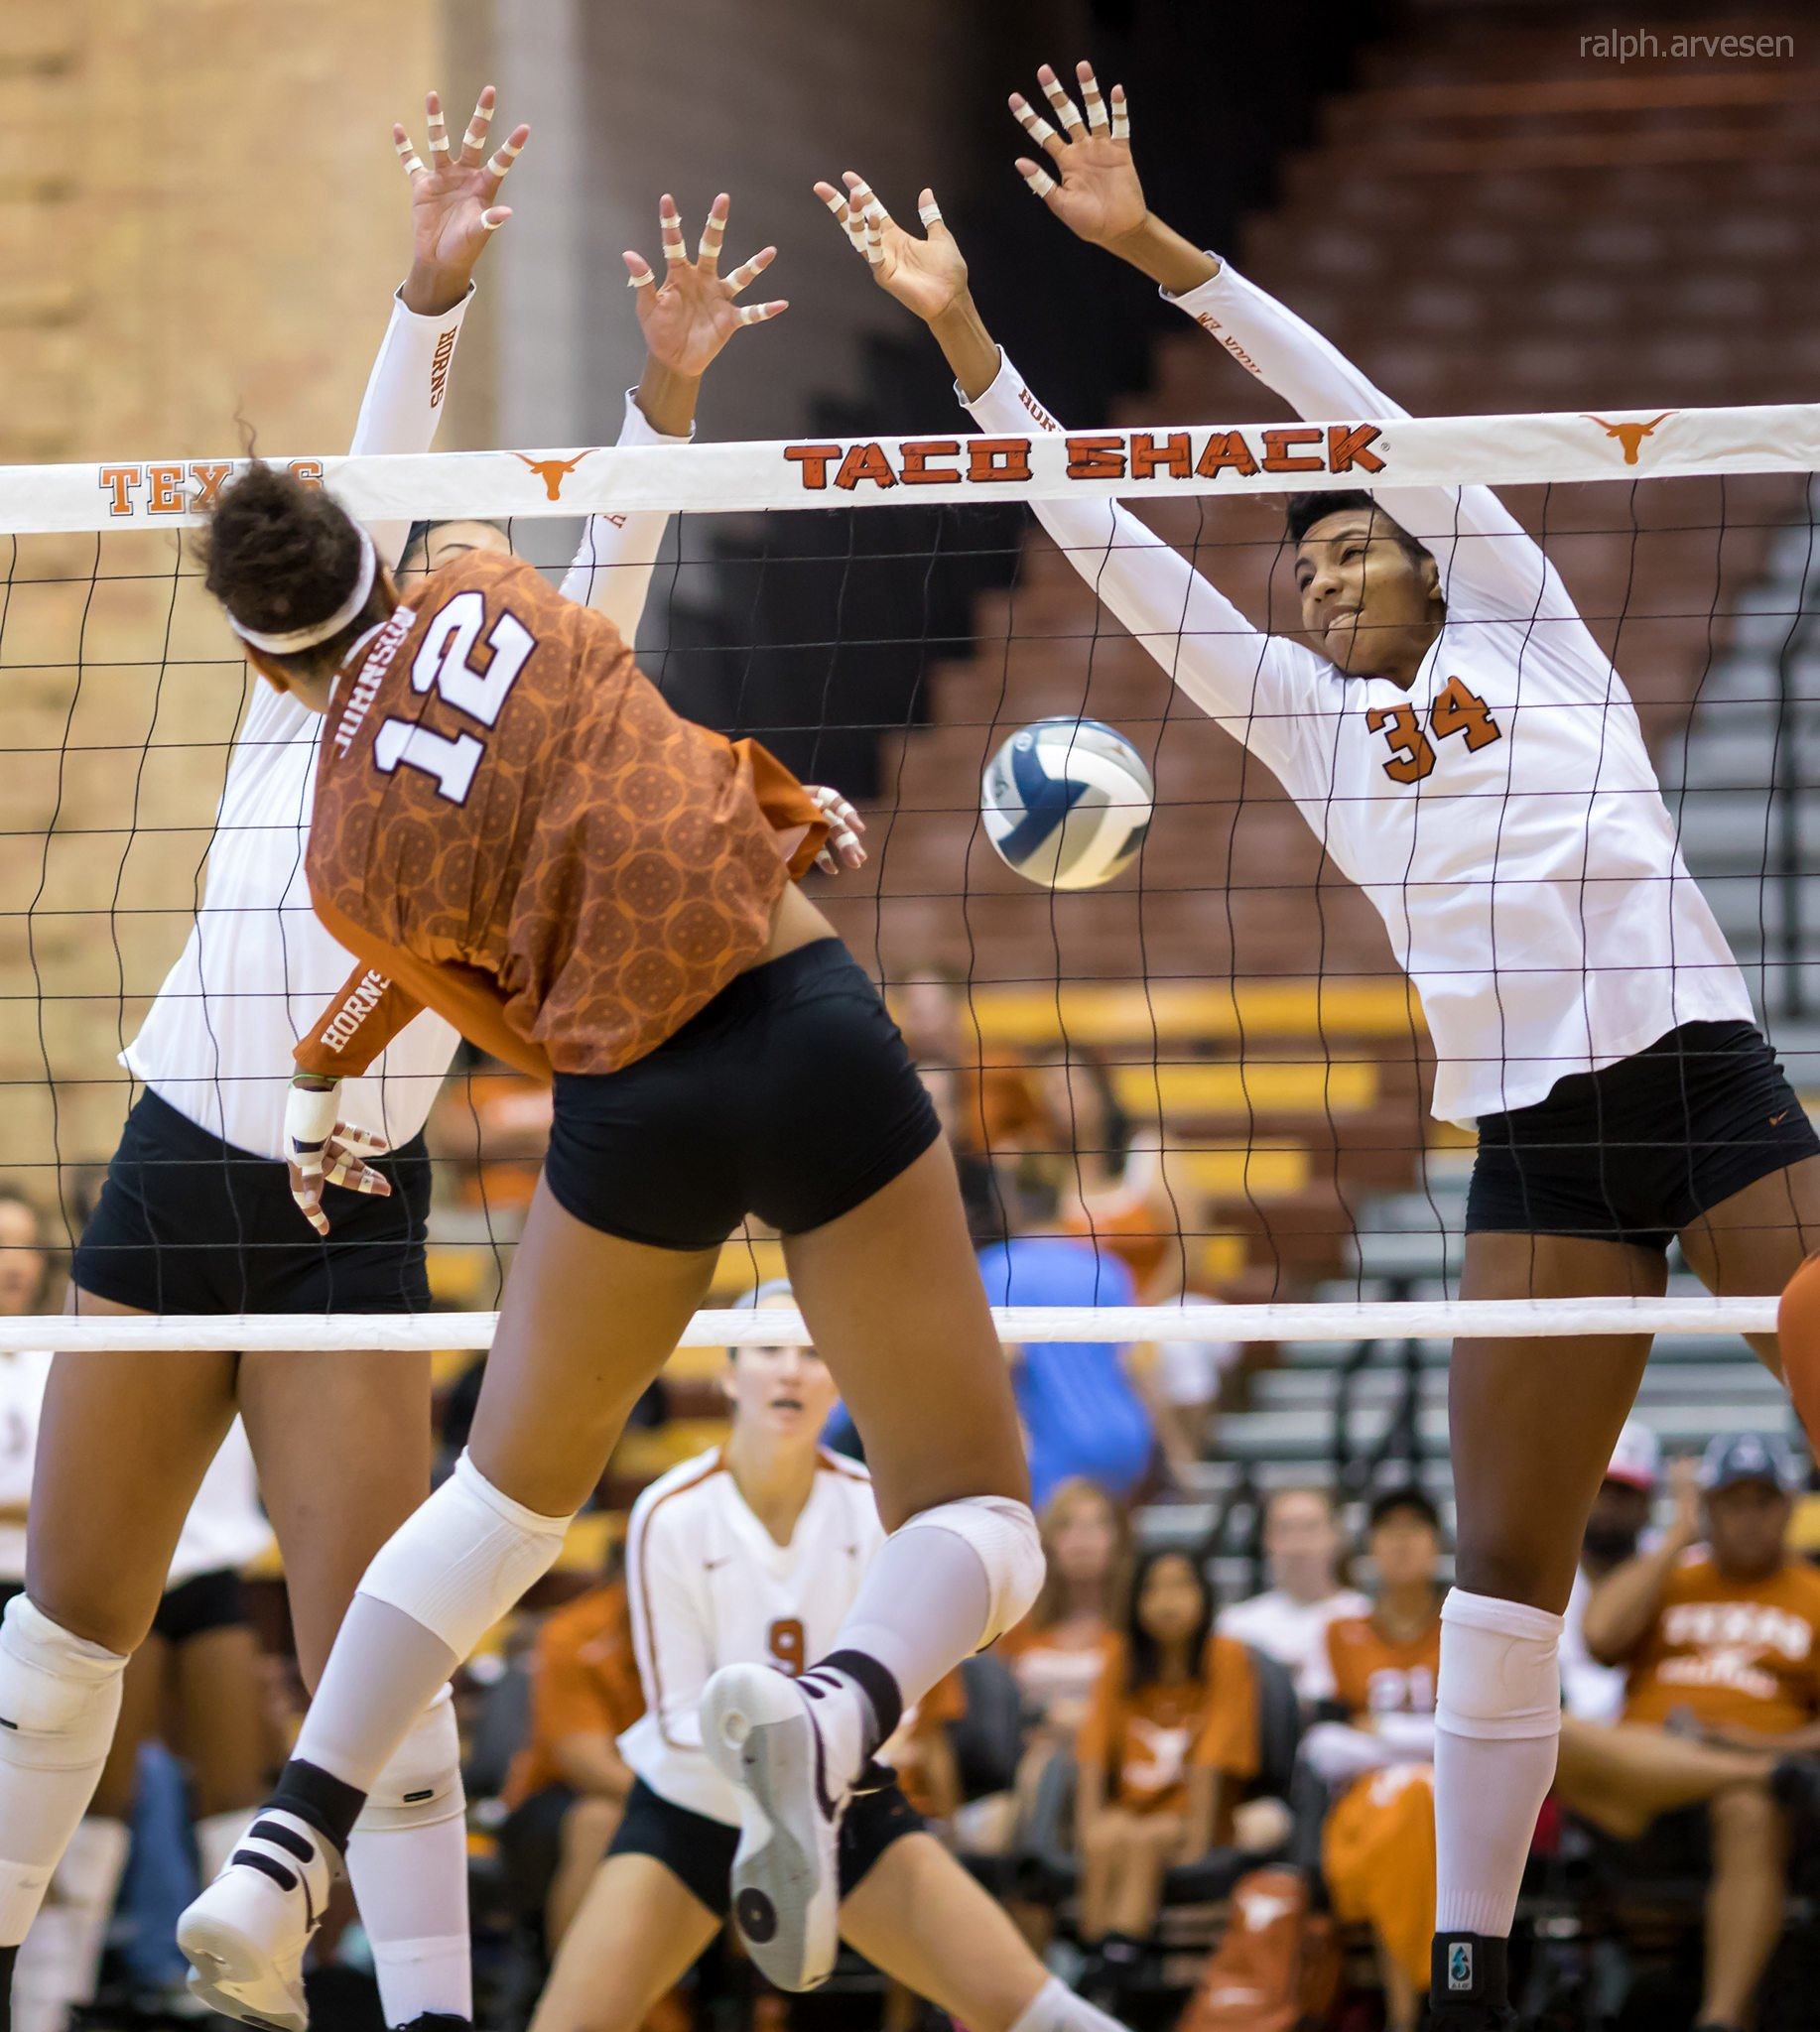 What is blocking in volleyball? When the serving team's on defense with 3 front row blockers who try to stop opposing hitters from hitting into their court. (R. Aversen)